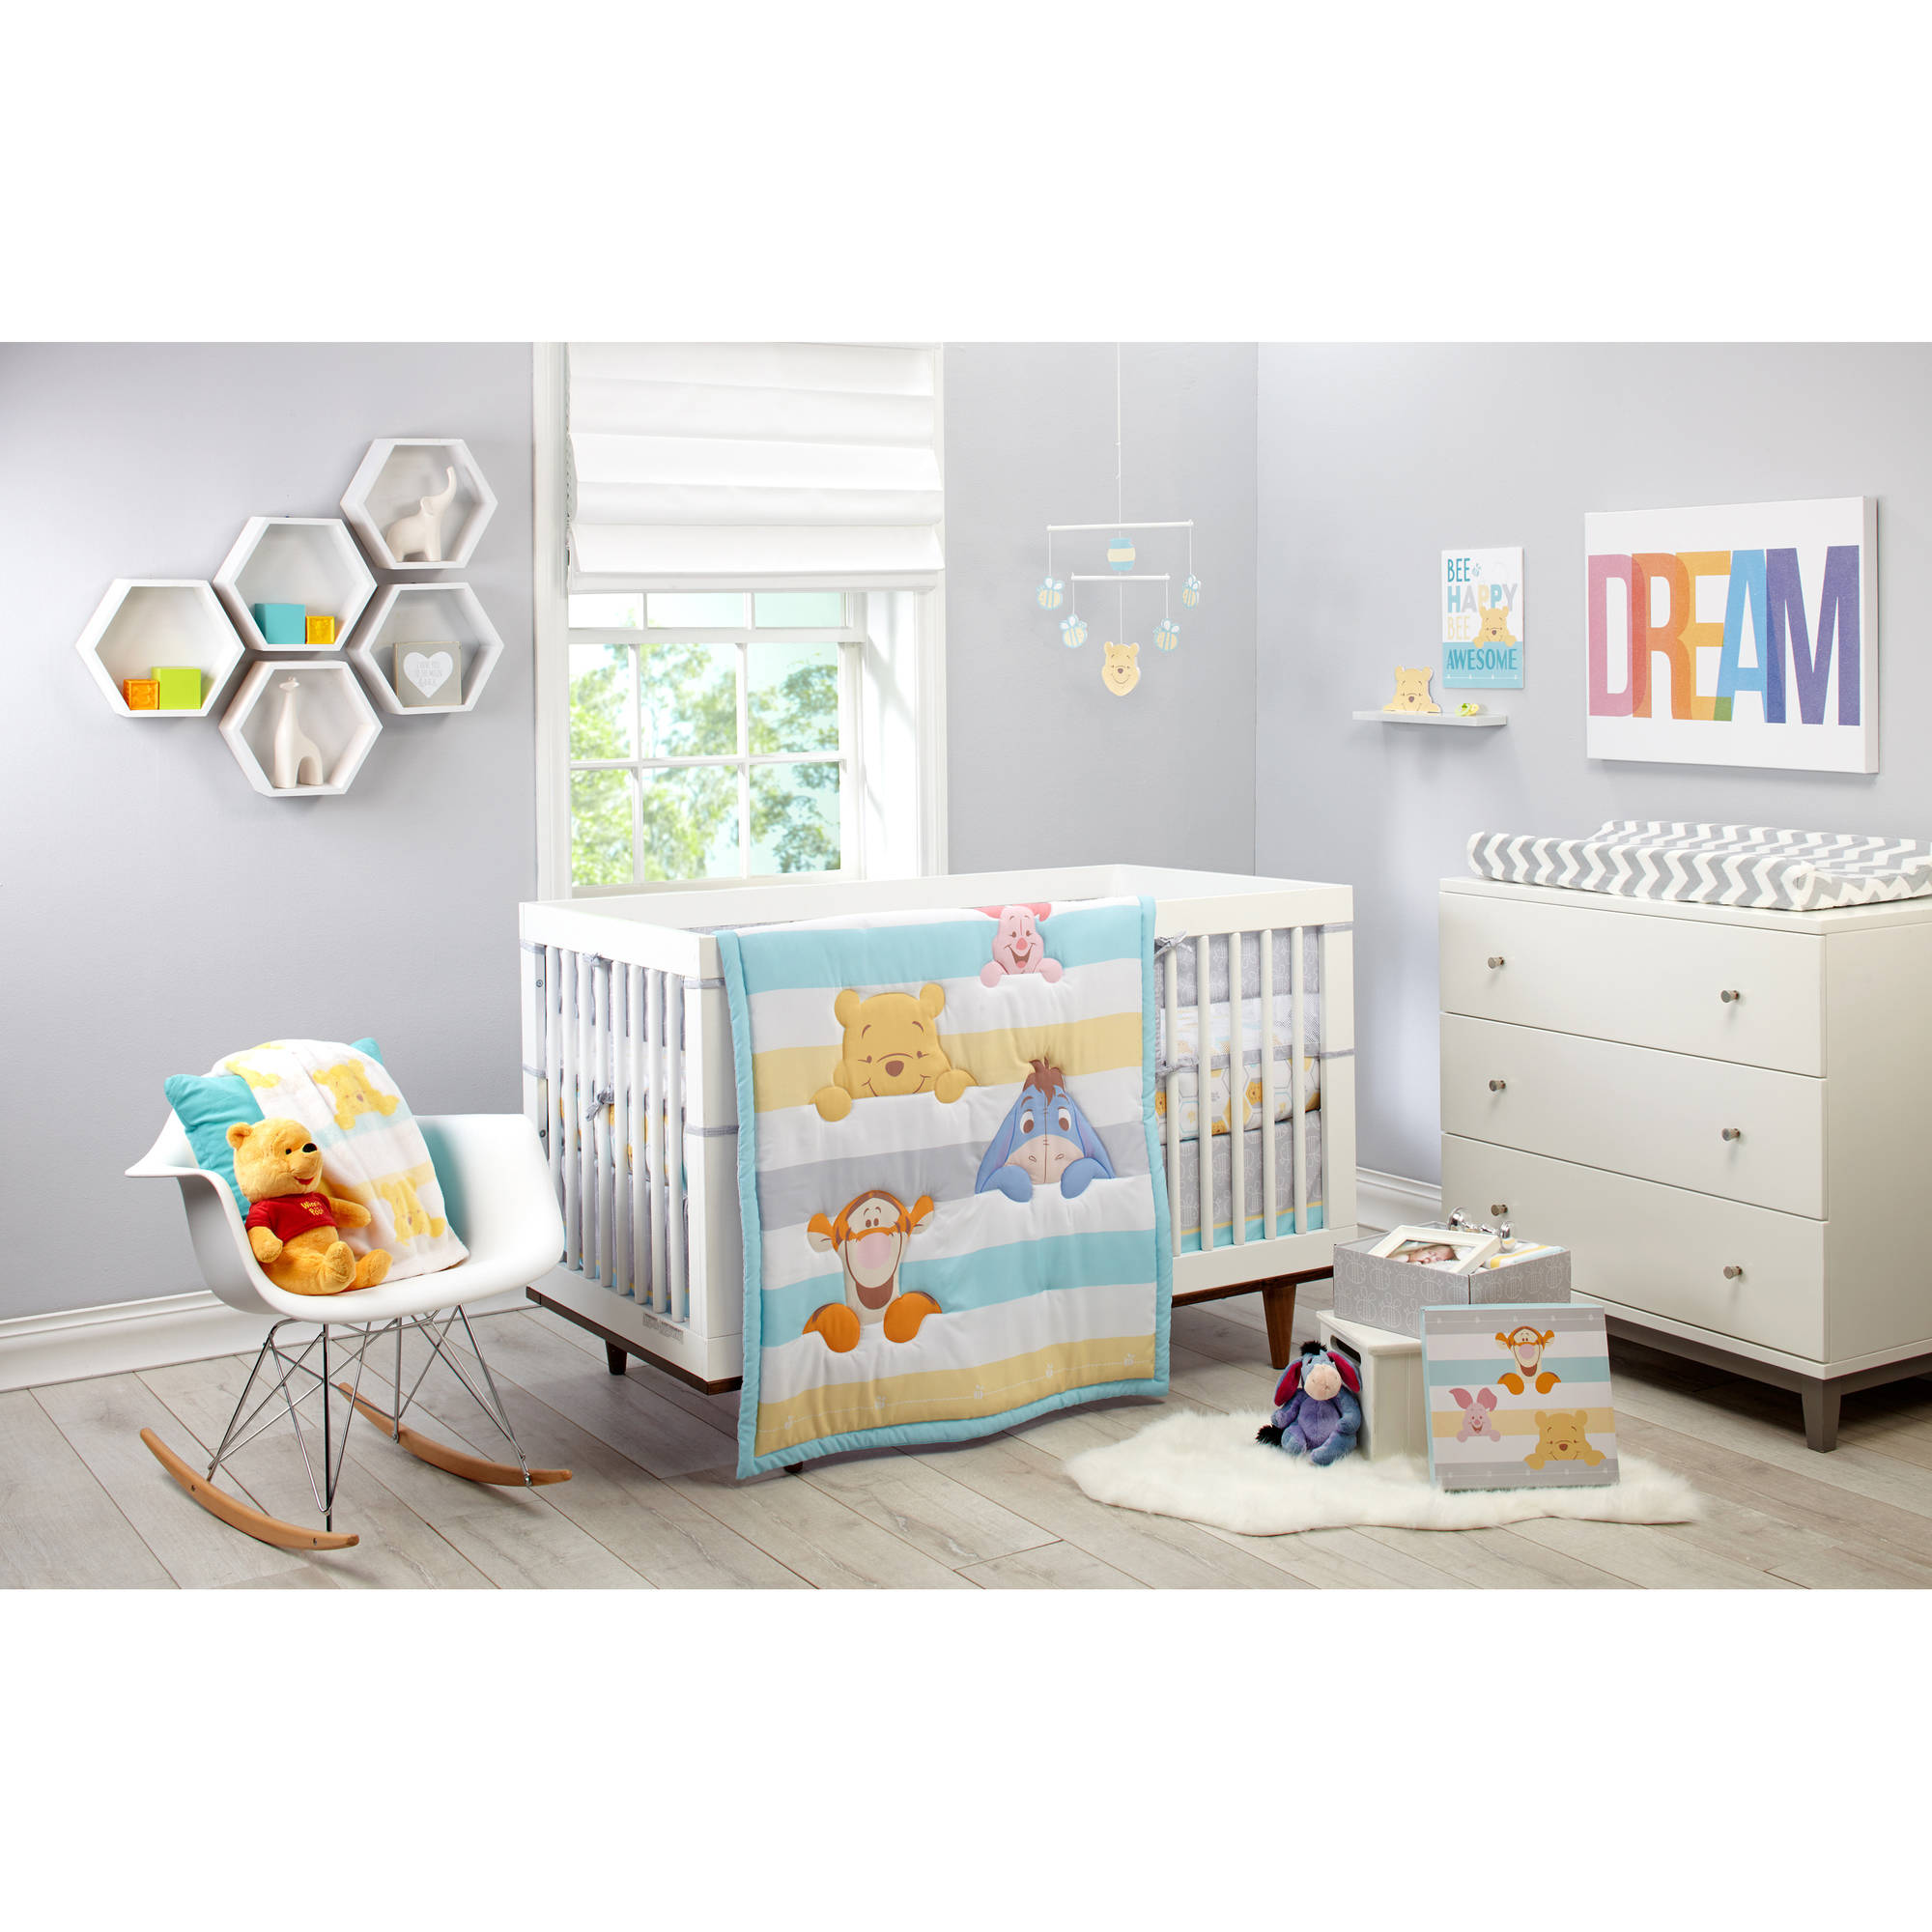 Full Crib Bedding Sets Eeyore Crib Bedding Sets